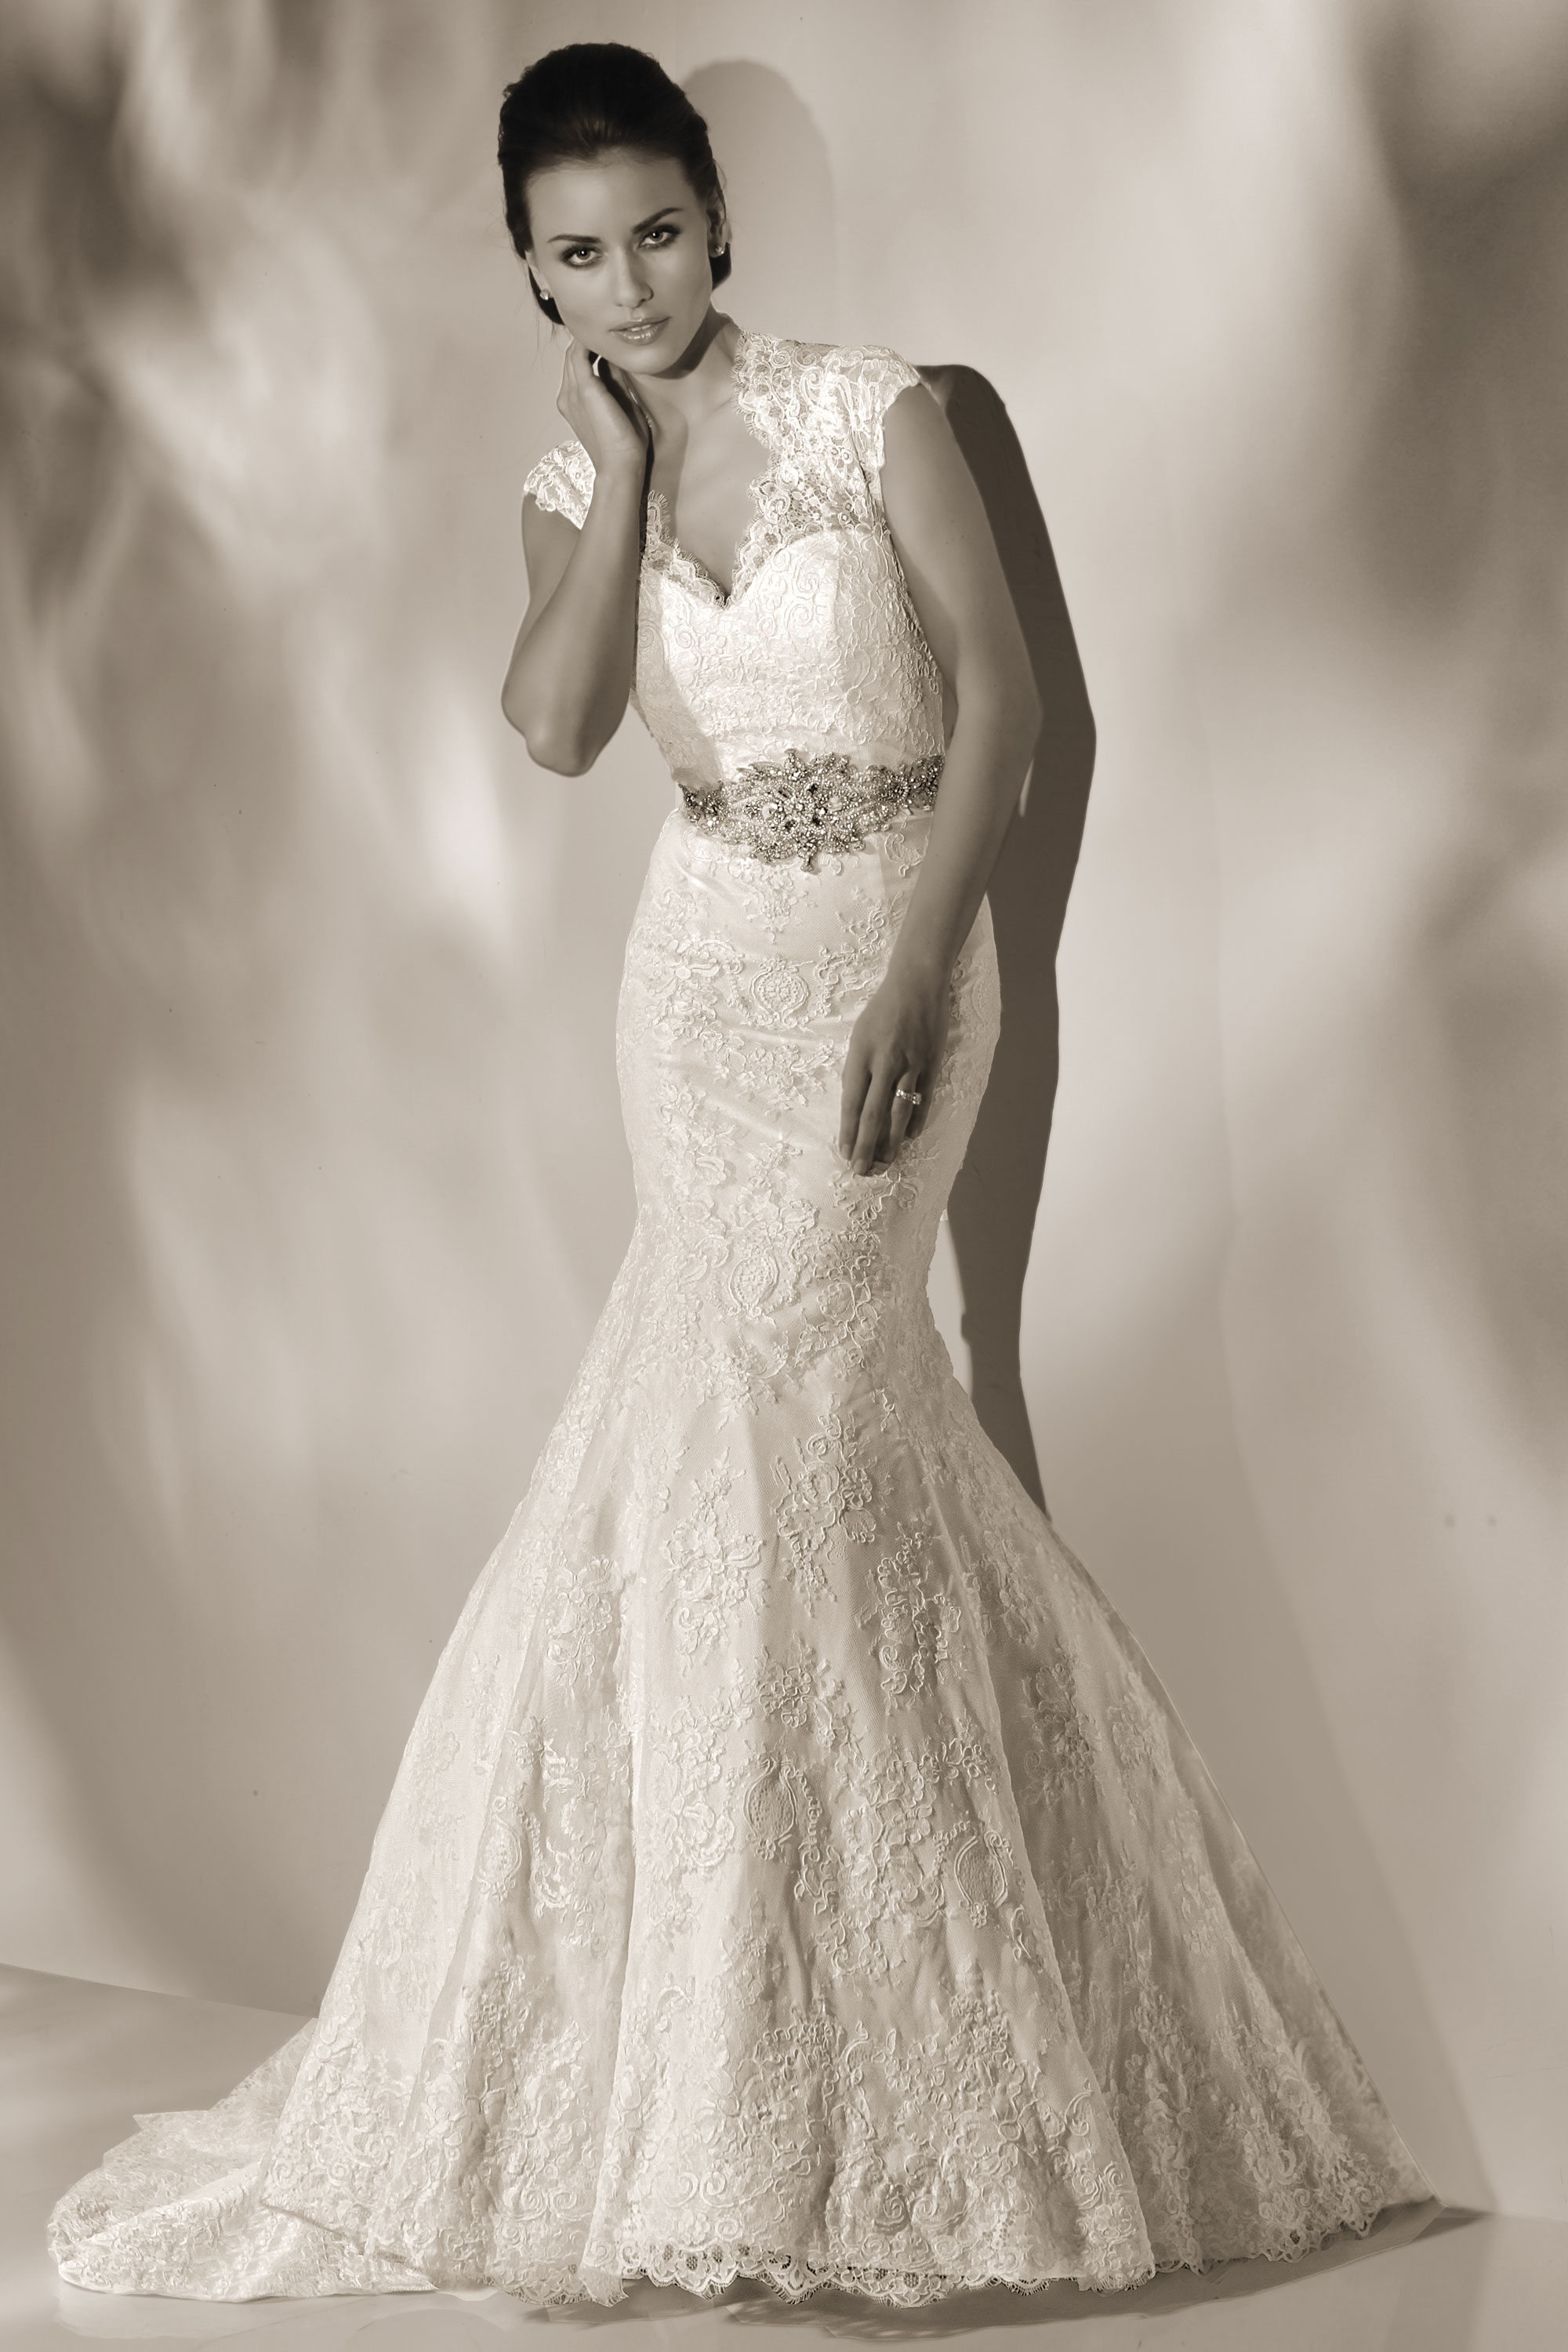 cristiano-lucci-wedding-dresses-27-01052014